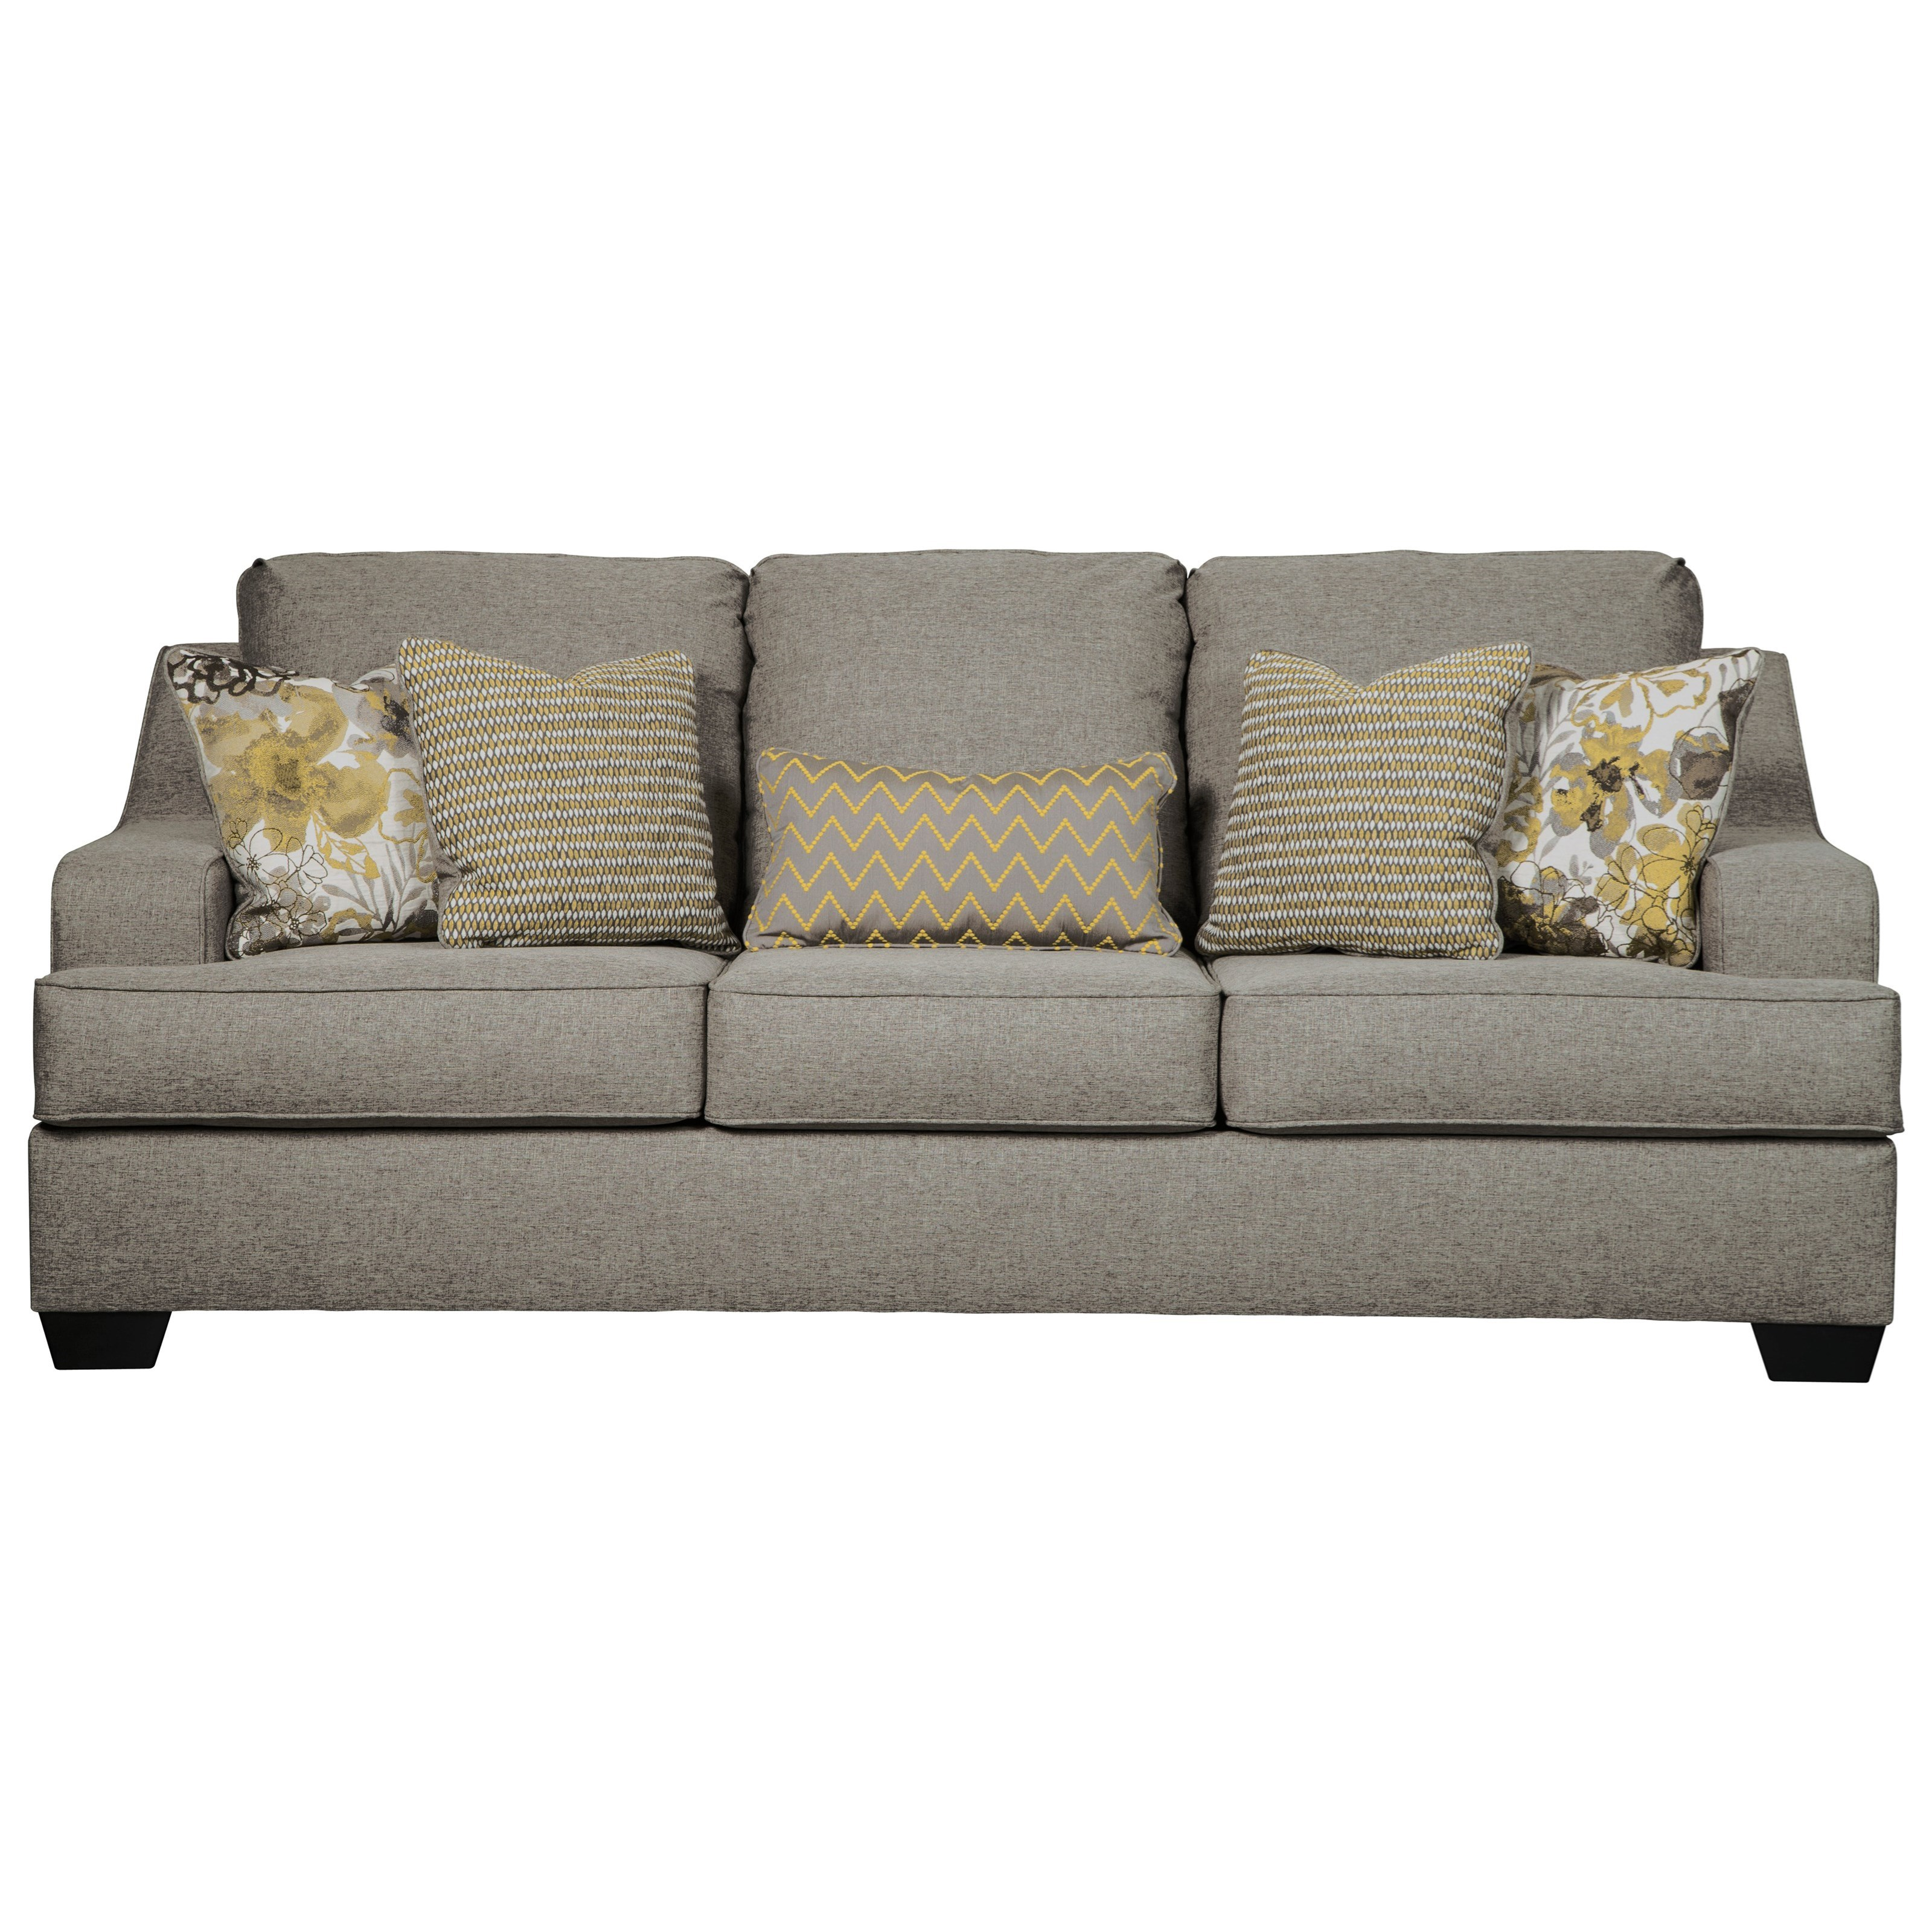 Benchcraft Mandee Queen Sofa Sleeper With Contemporary